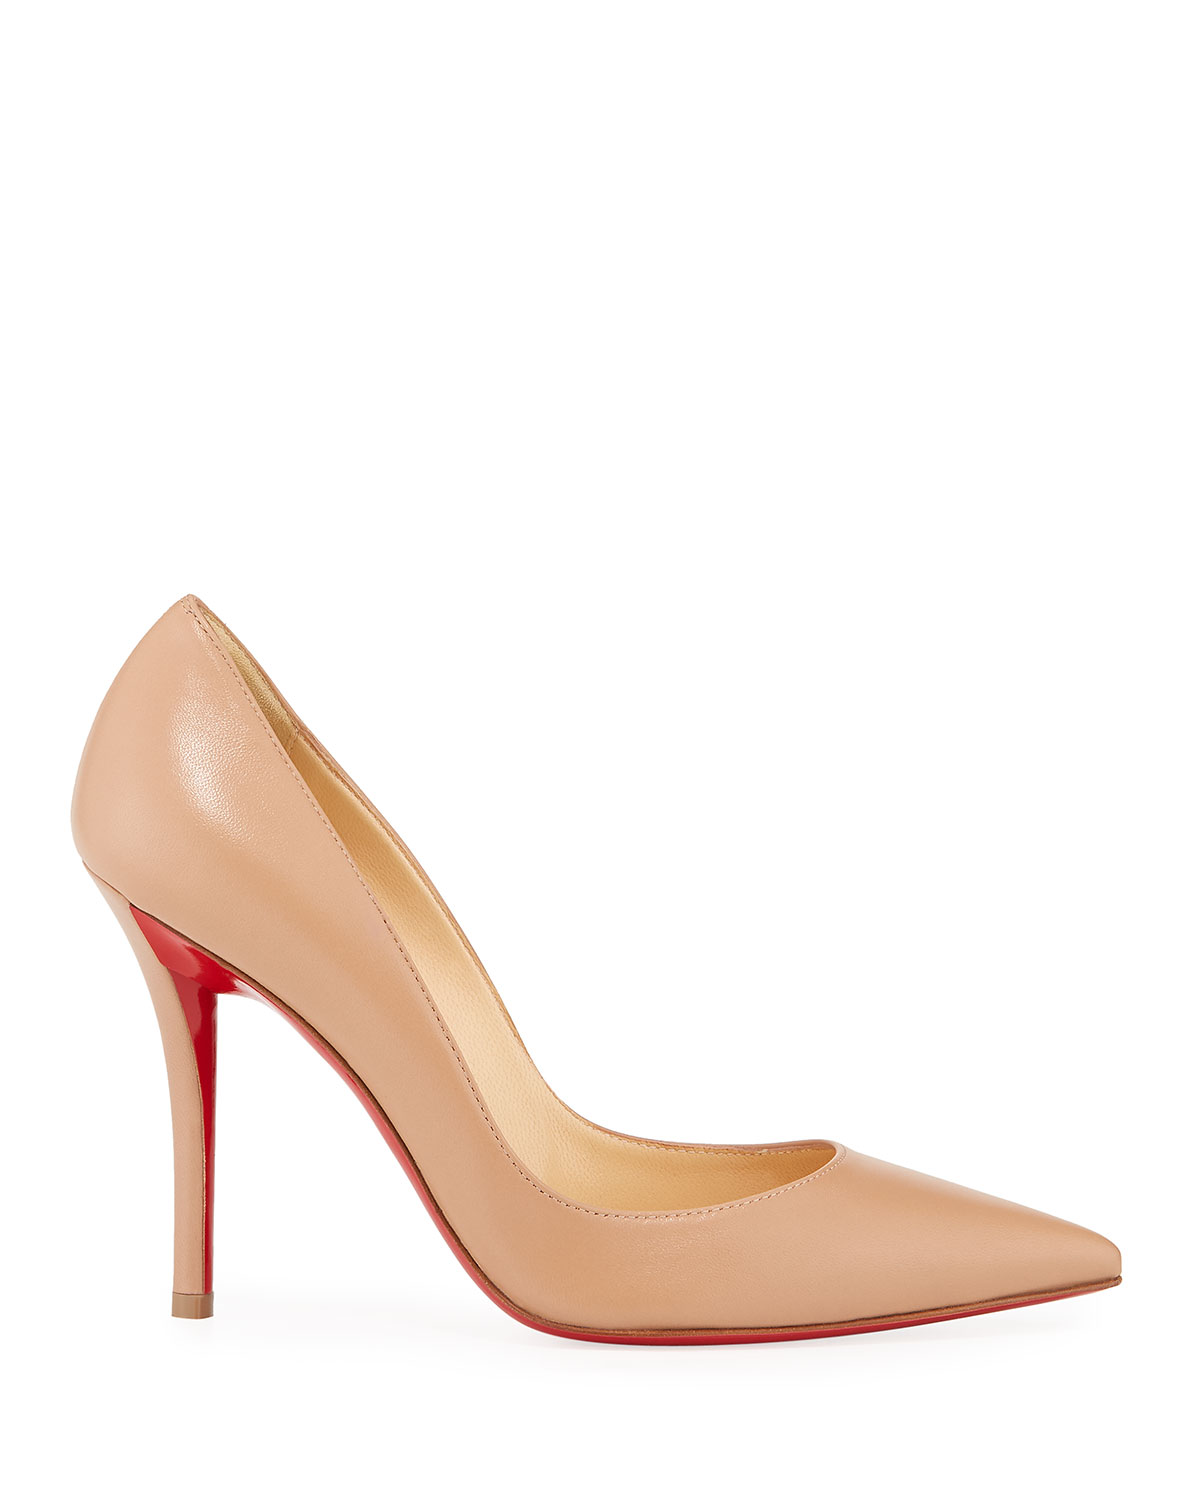 73e550b4663 Apostrophy Pointed Red-Sole Pump